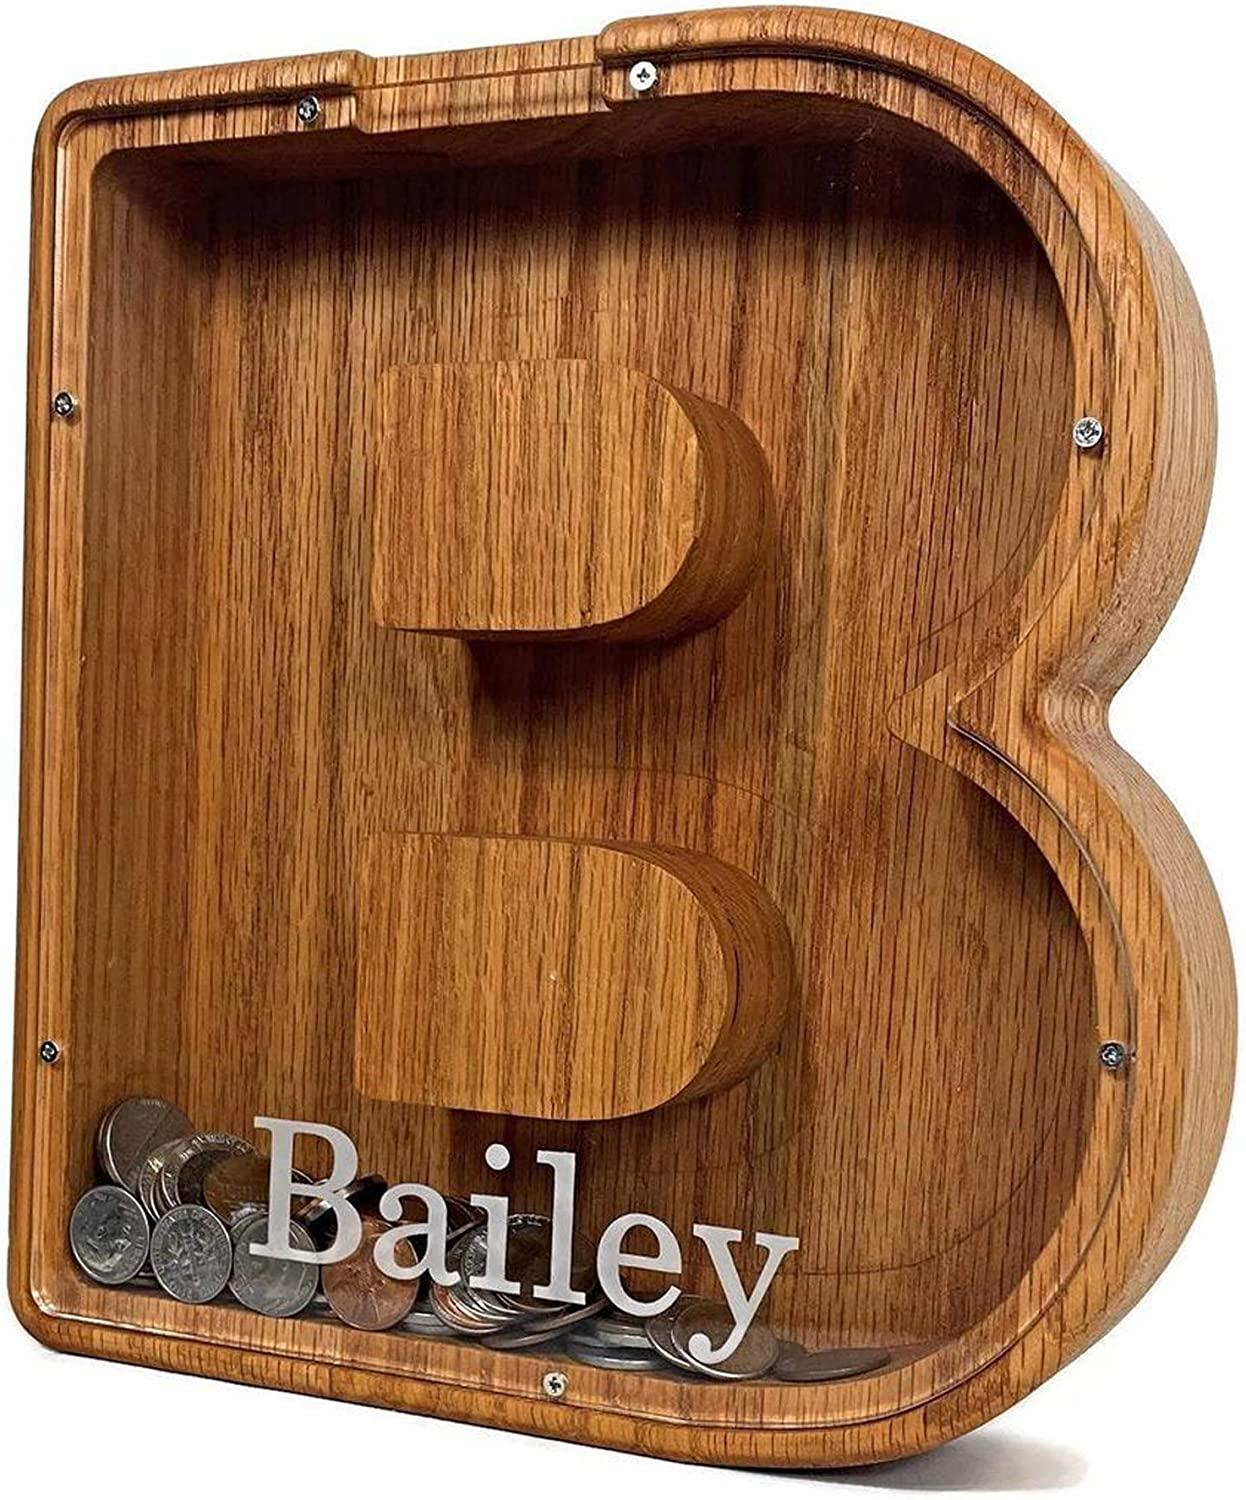 Oismys Personalized Letter Piggy Oak Opening large release sale Wood Wooden Bank Very popular!